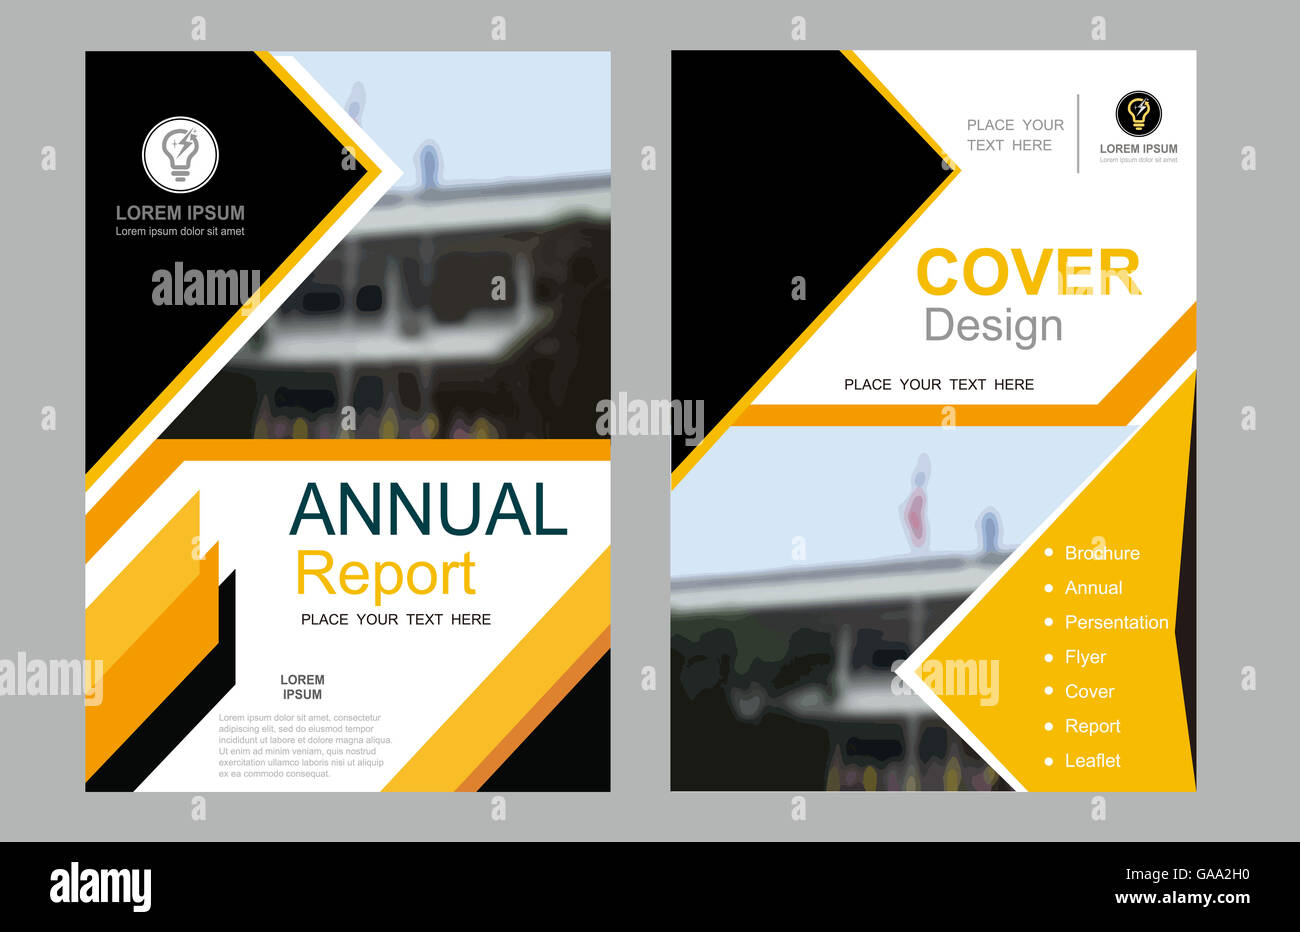 Cover Design Annual Layout Flyer Book Ad Page Vector Poster Stock Photo 109630332 Alamy